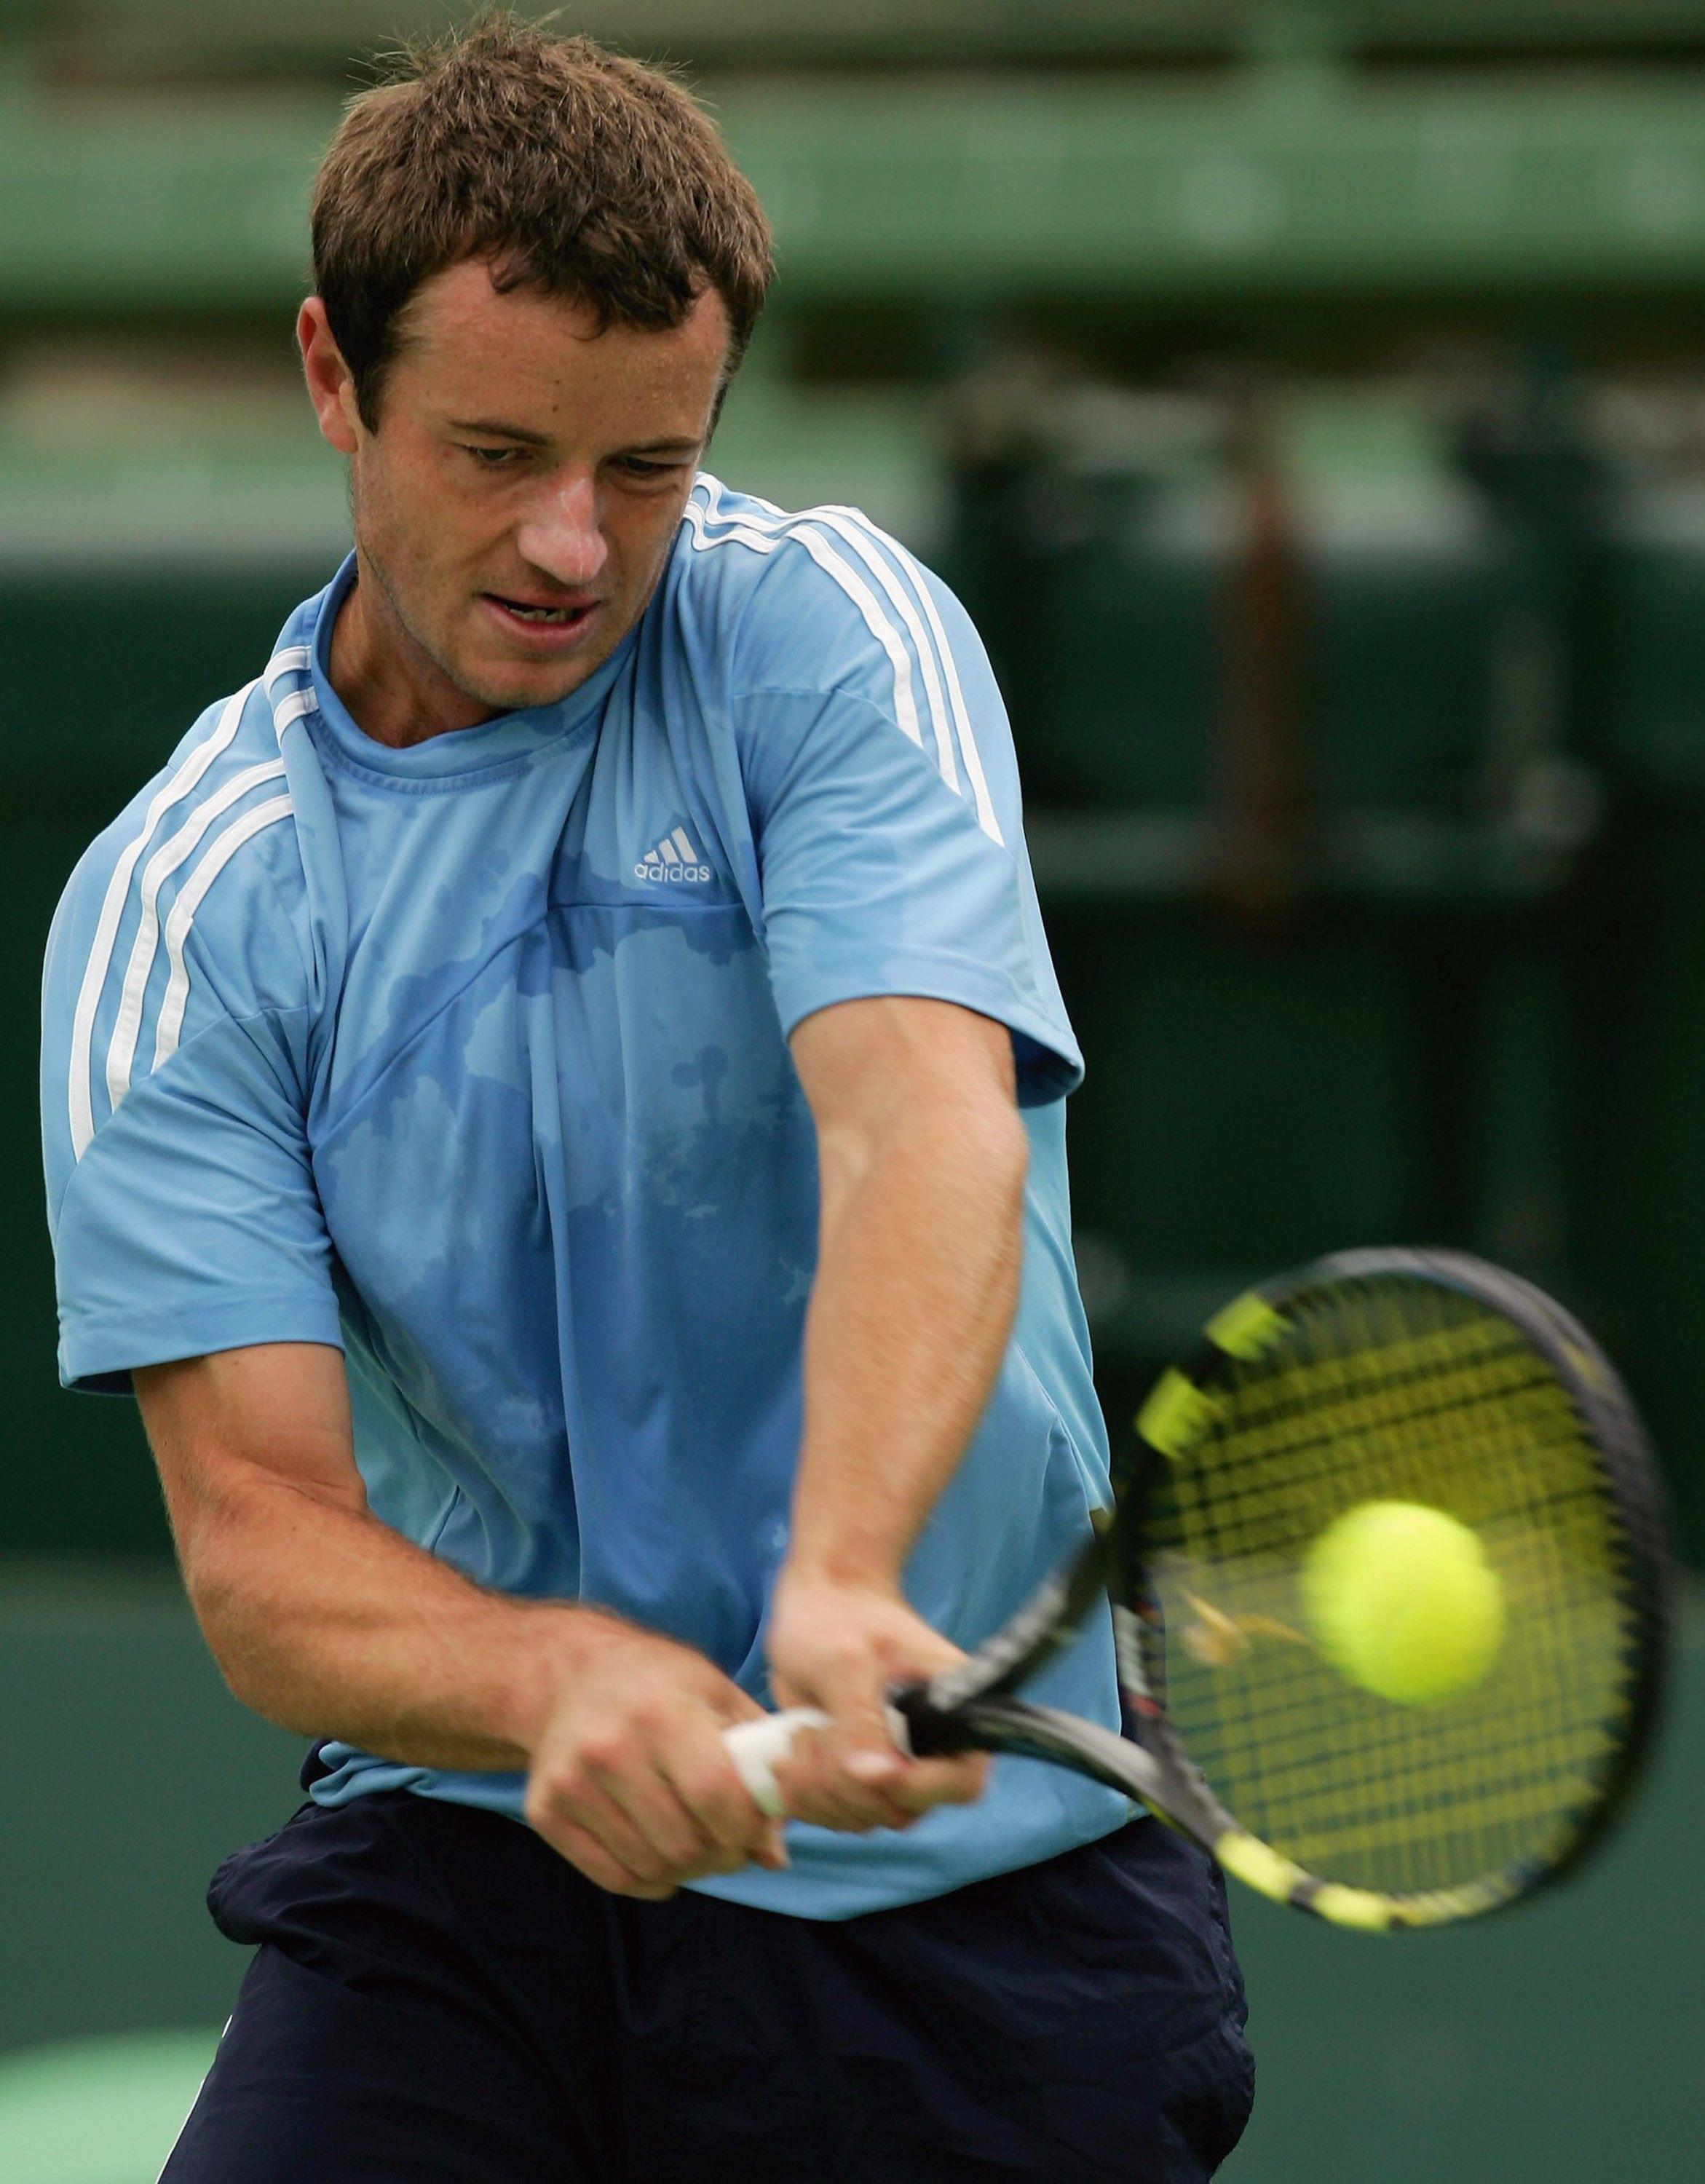 Todd Reid was tipped to become the next big thing in tennis before injuries hit